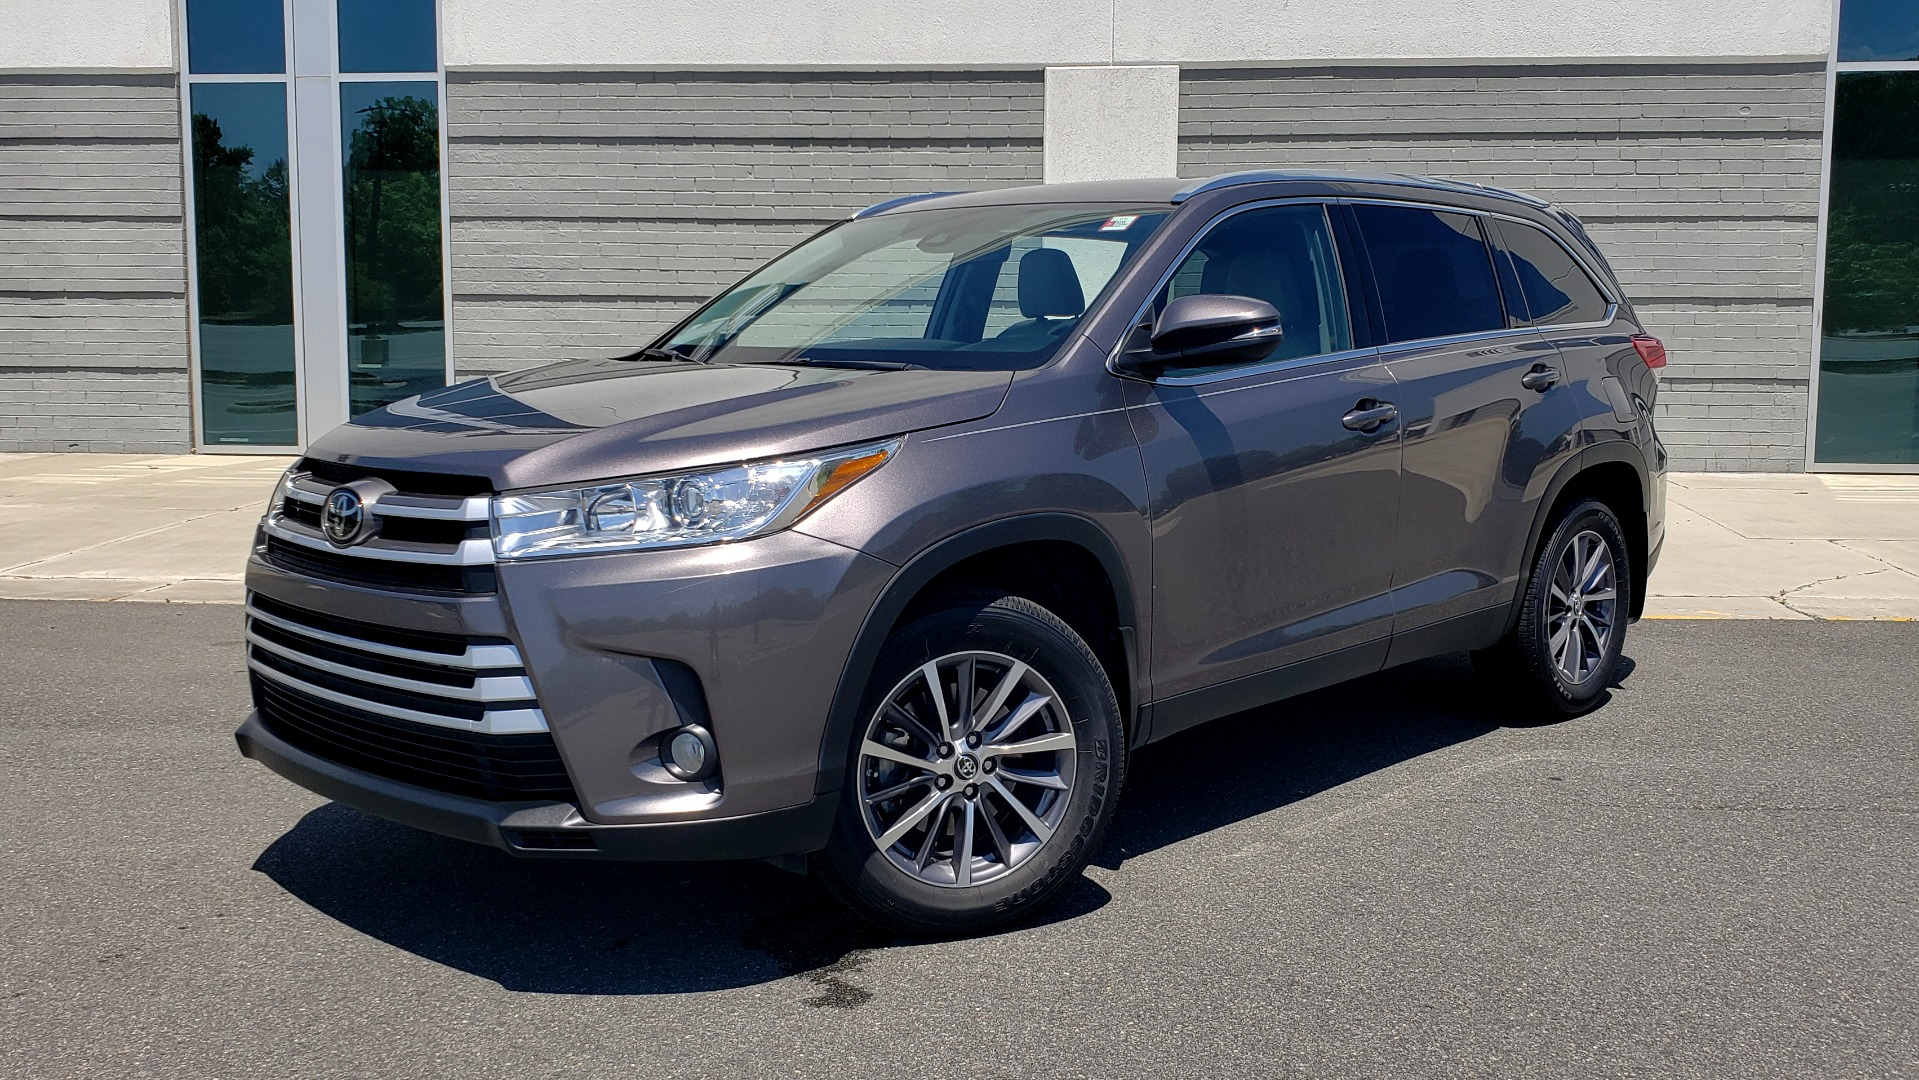 Used 2019 Toyota HIGHLANDER XLE / 3.5L V6 / AWD / LEATHER / 8-SPD AUTO / 1-OWNER for sale $37,500 at Formula Imports in Charlotte NC 28227 1